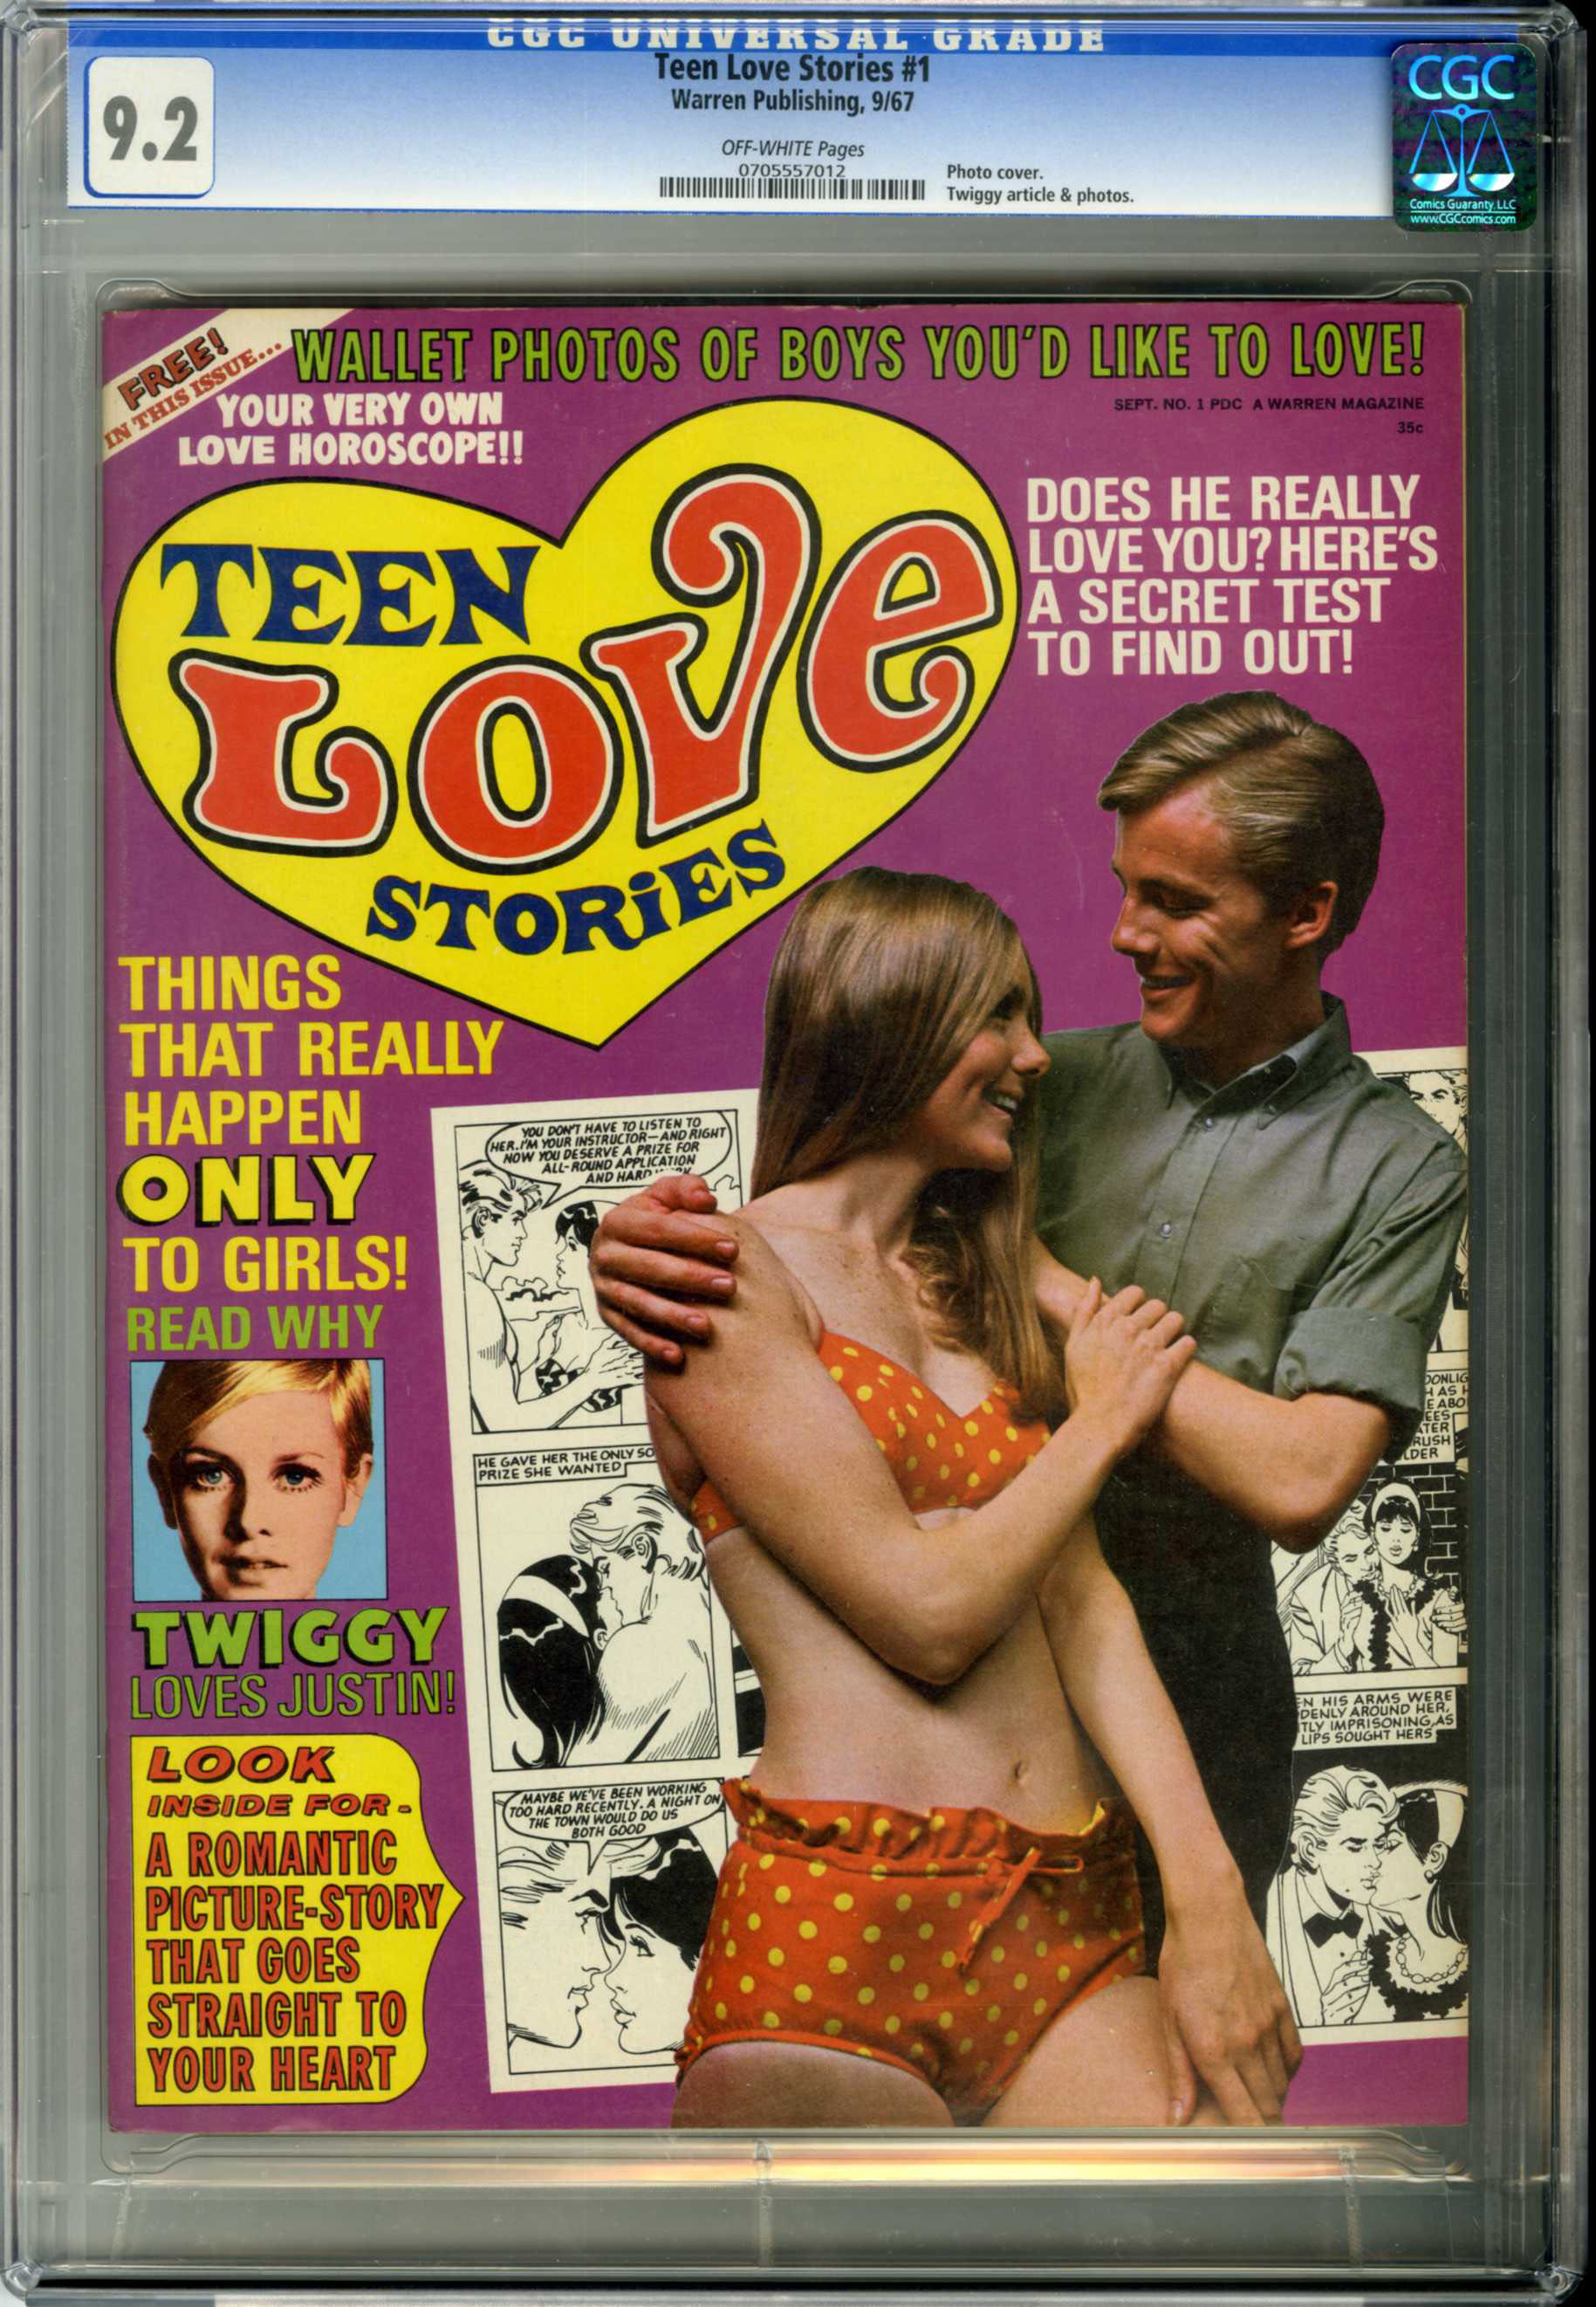 TEEN LOVE STORIES #1 (1967) CGC NM- 9.2 OW Pages PHOTO COVER / TWIGGY ARTICLE